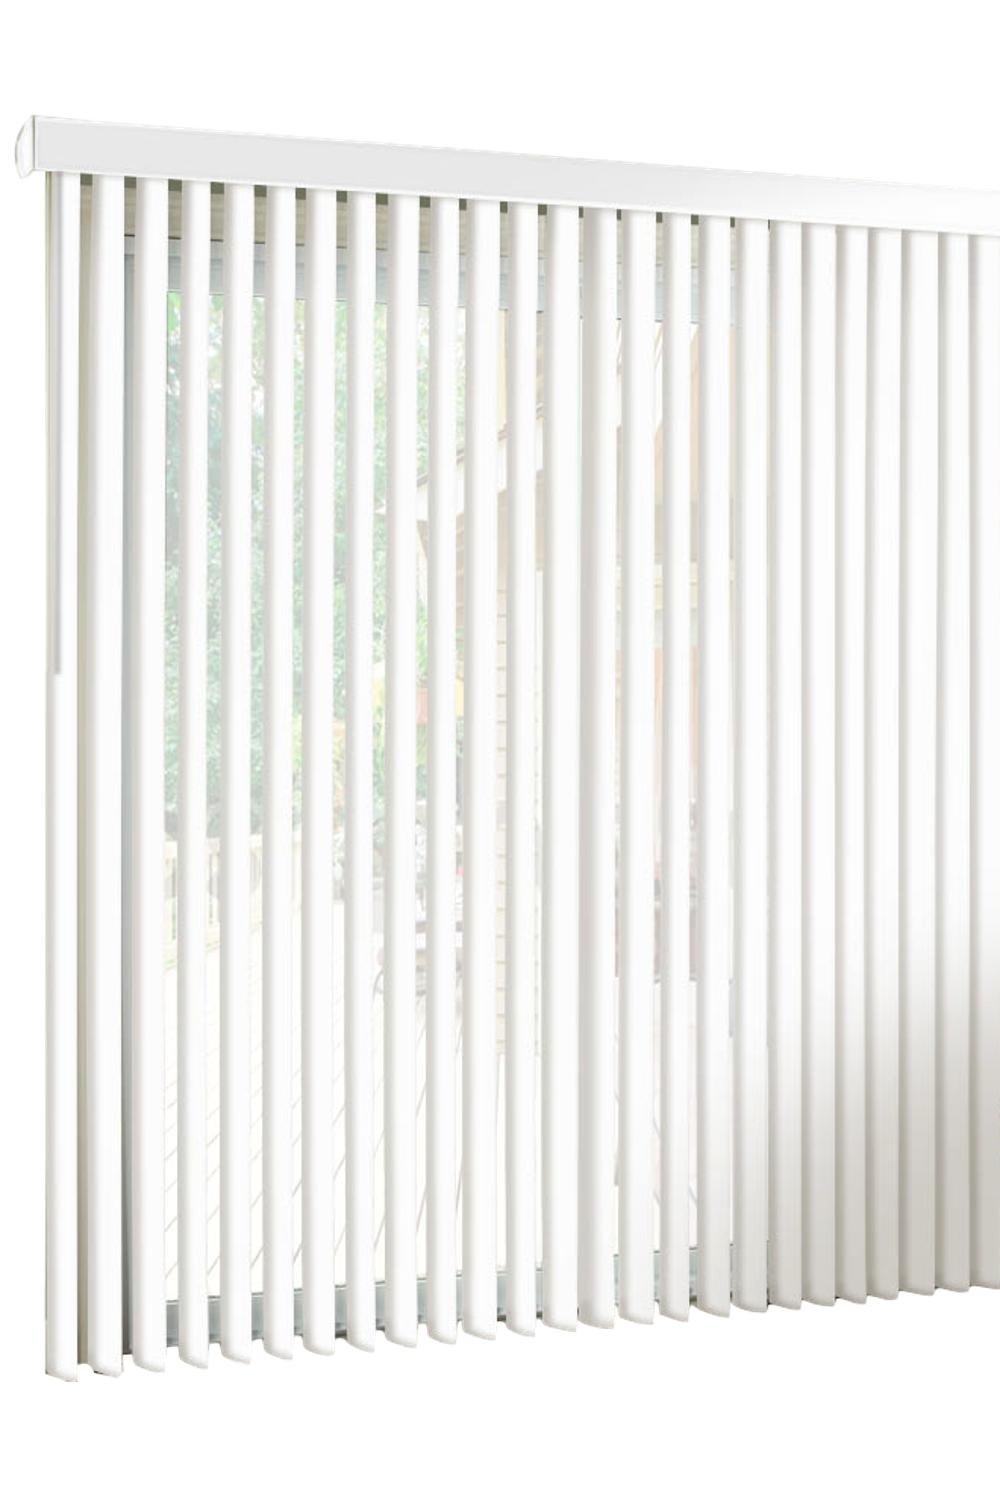 spotblinds White-Cordless-Custom-Made, Premium PVC Vertical Blinds-Blocks Sunlight-Assembled in The US-Exact Width & Length from 67'' Wide to 81'' Long. Receive a (70'' W x 78'' L) Vertical Blind. by spotblinds